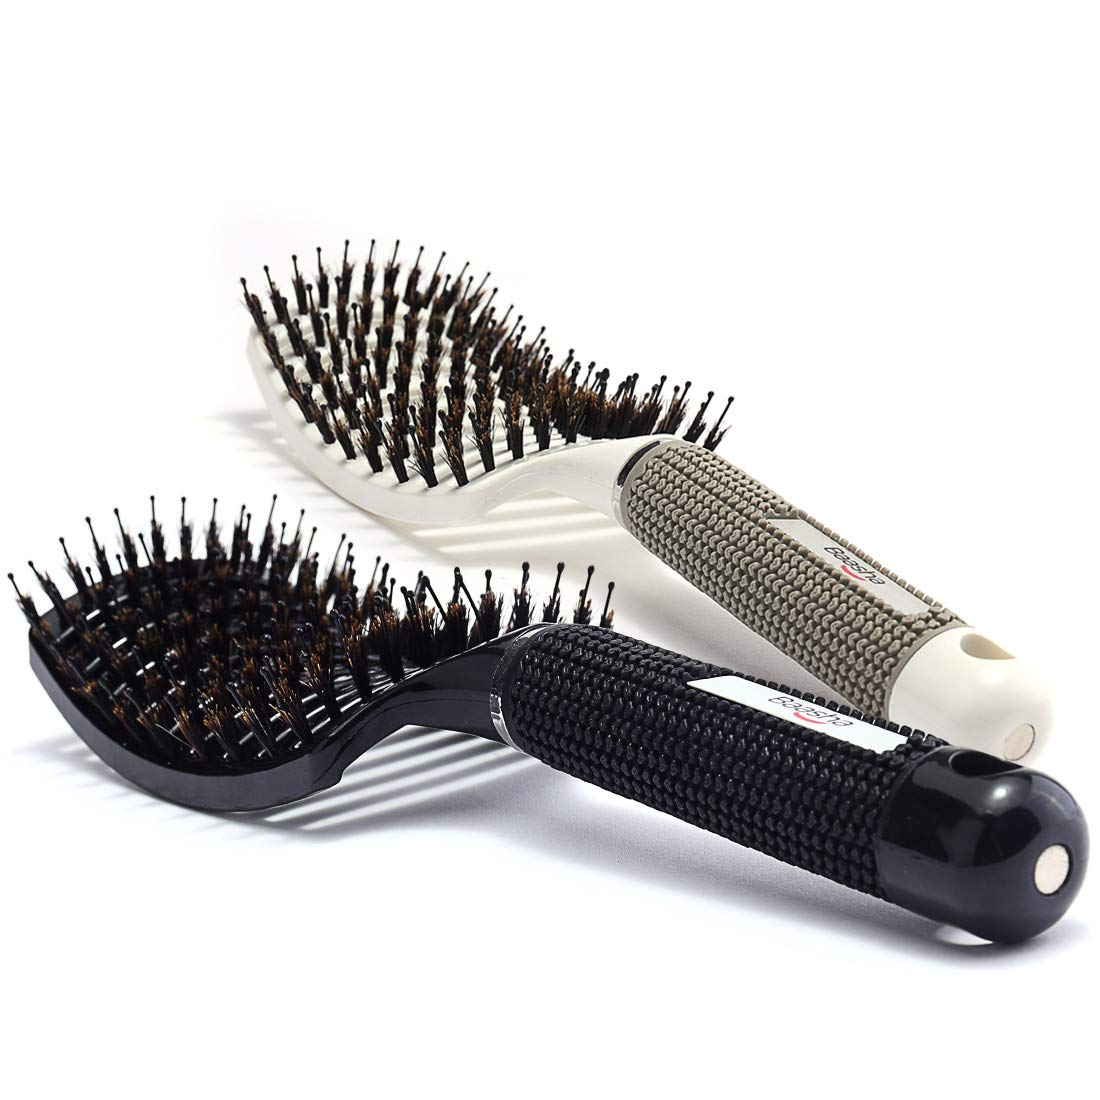 Baasha Detangling Hair Brush for Curly Hair, Boar Bristle Hair Brush Set of 2 Black & White, Large Boar Bristle Vent Brush For Blow Drying for Women, Curved Hair Brush Vented With Boar Bristle